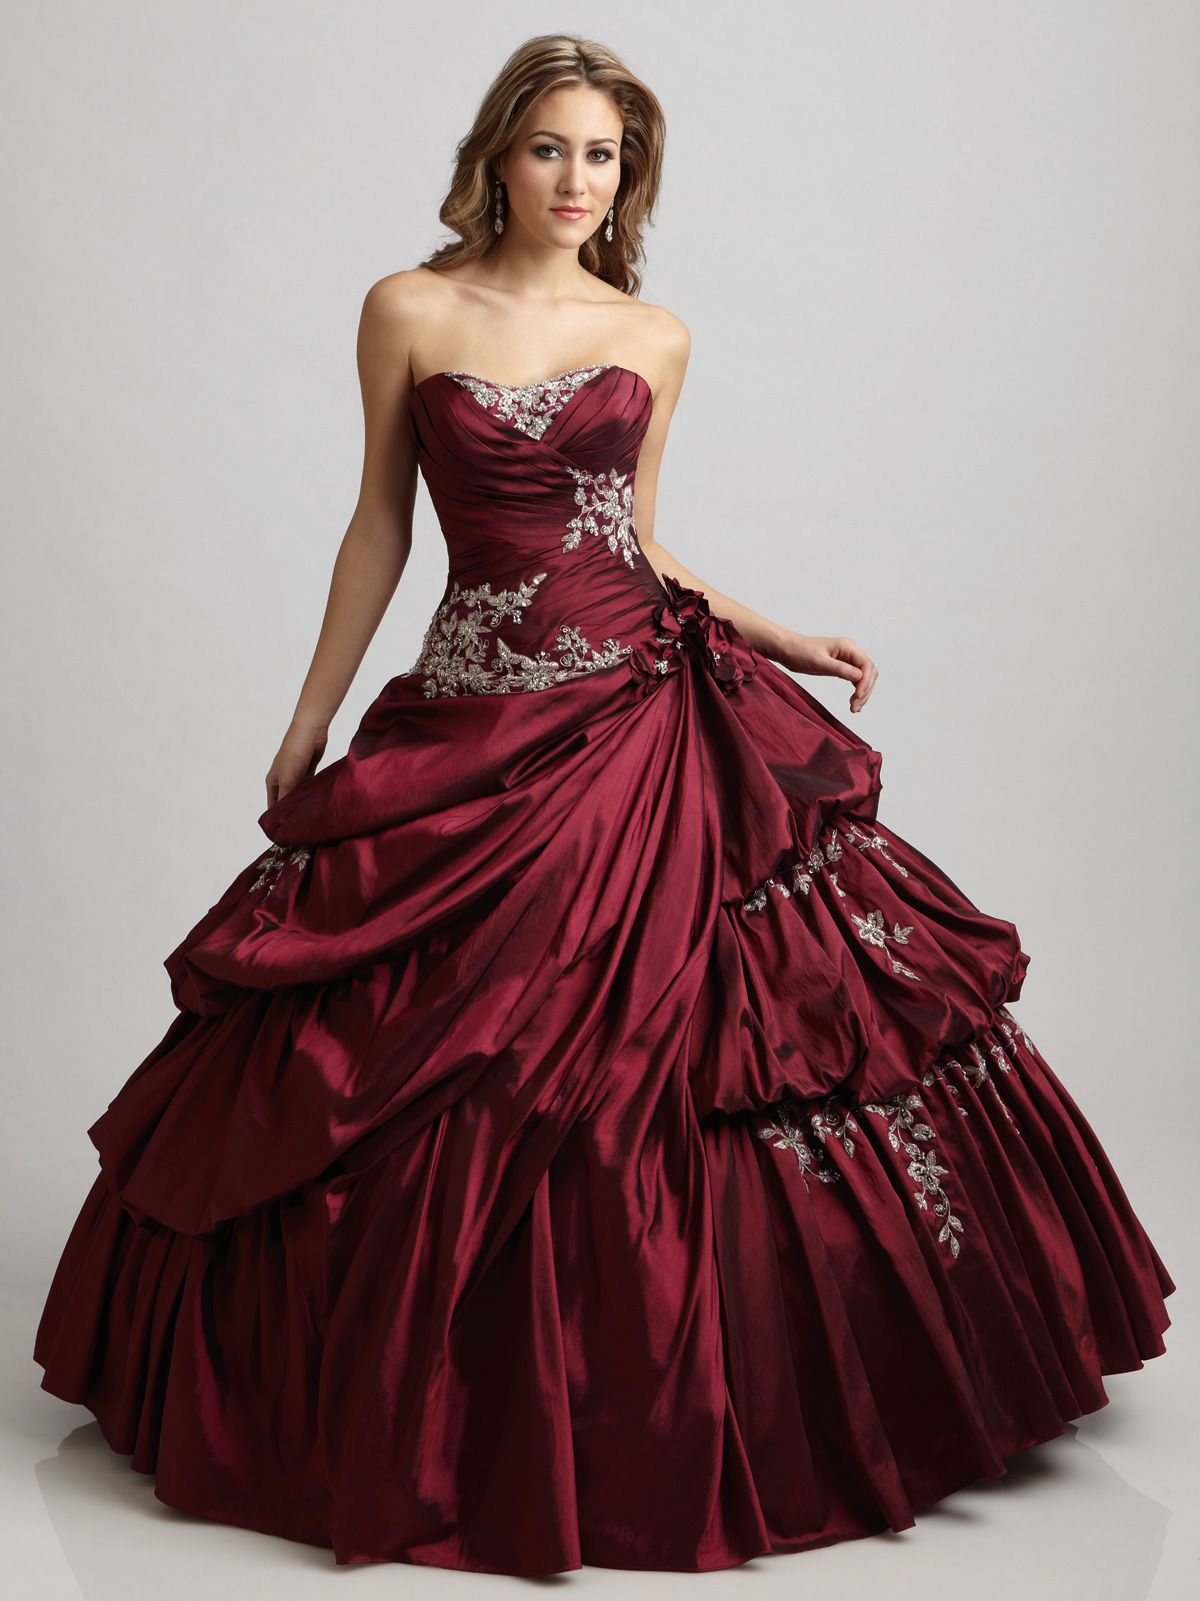 Allure quinceanera dress q sweetheart quince dressauthorized